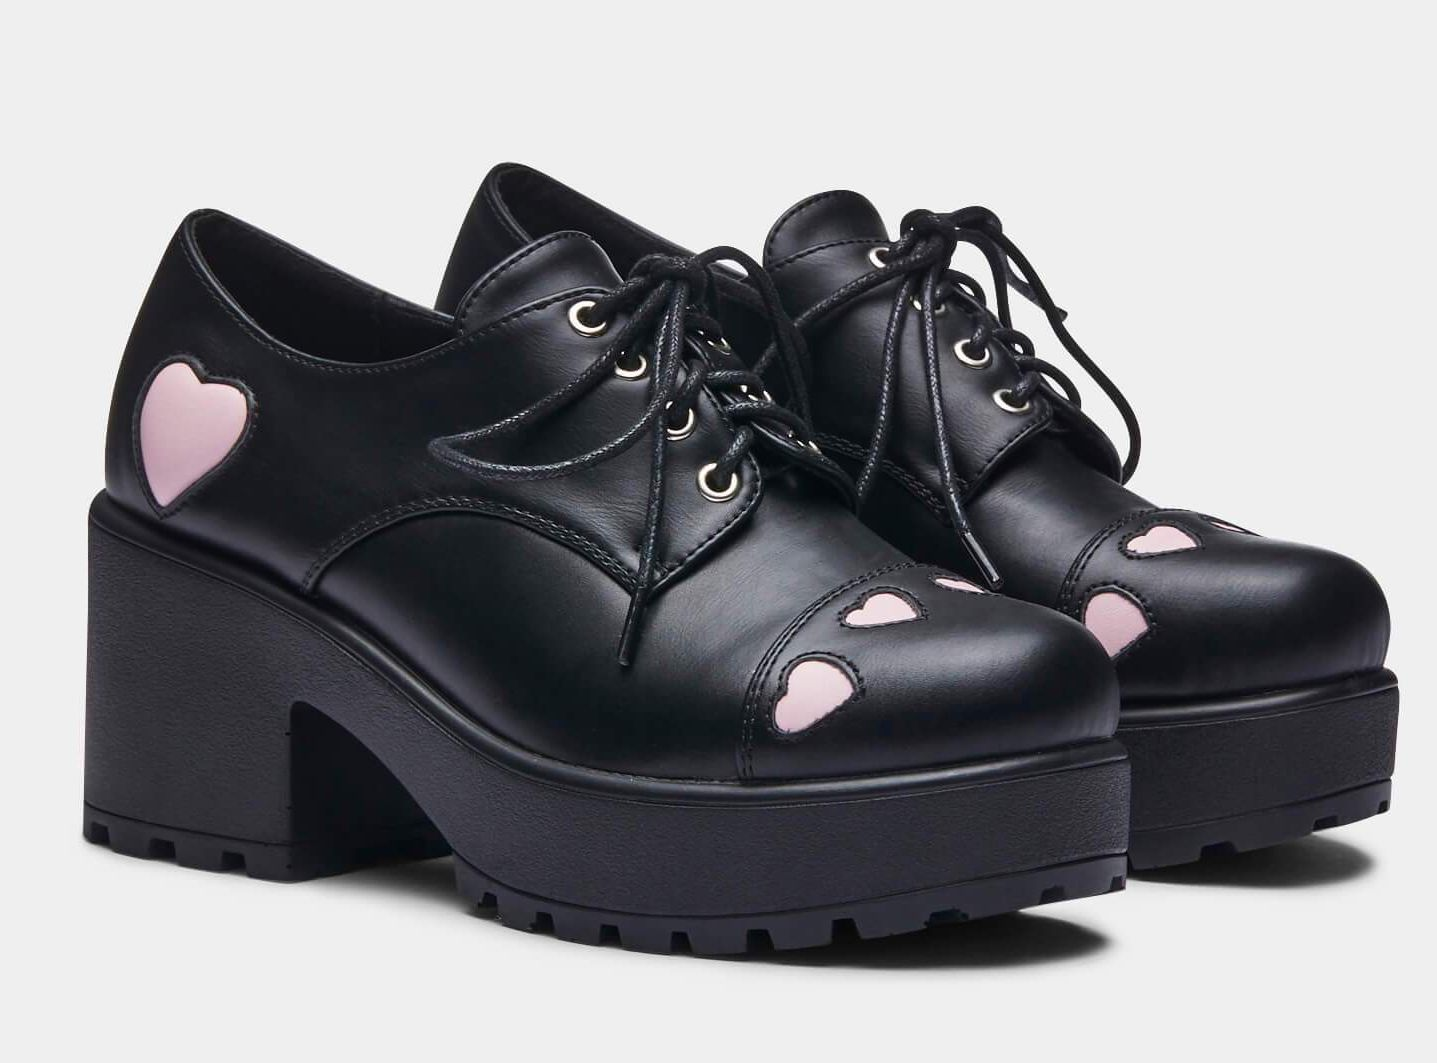 kfnd116bbb_chaussures-mary-jane-plateforme-kawaii-glam-rock-tennin-heart